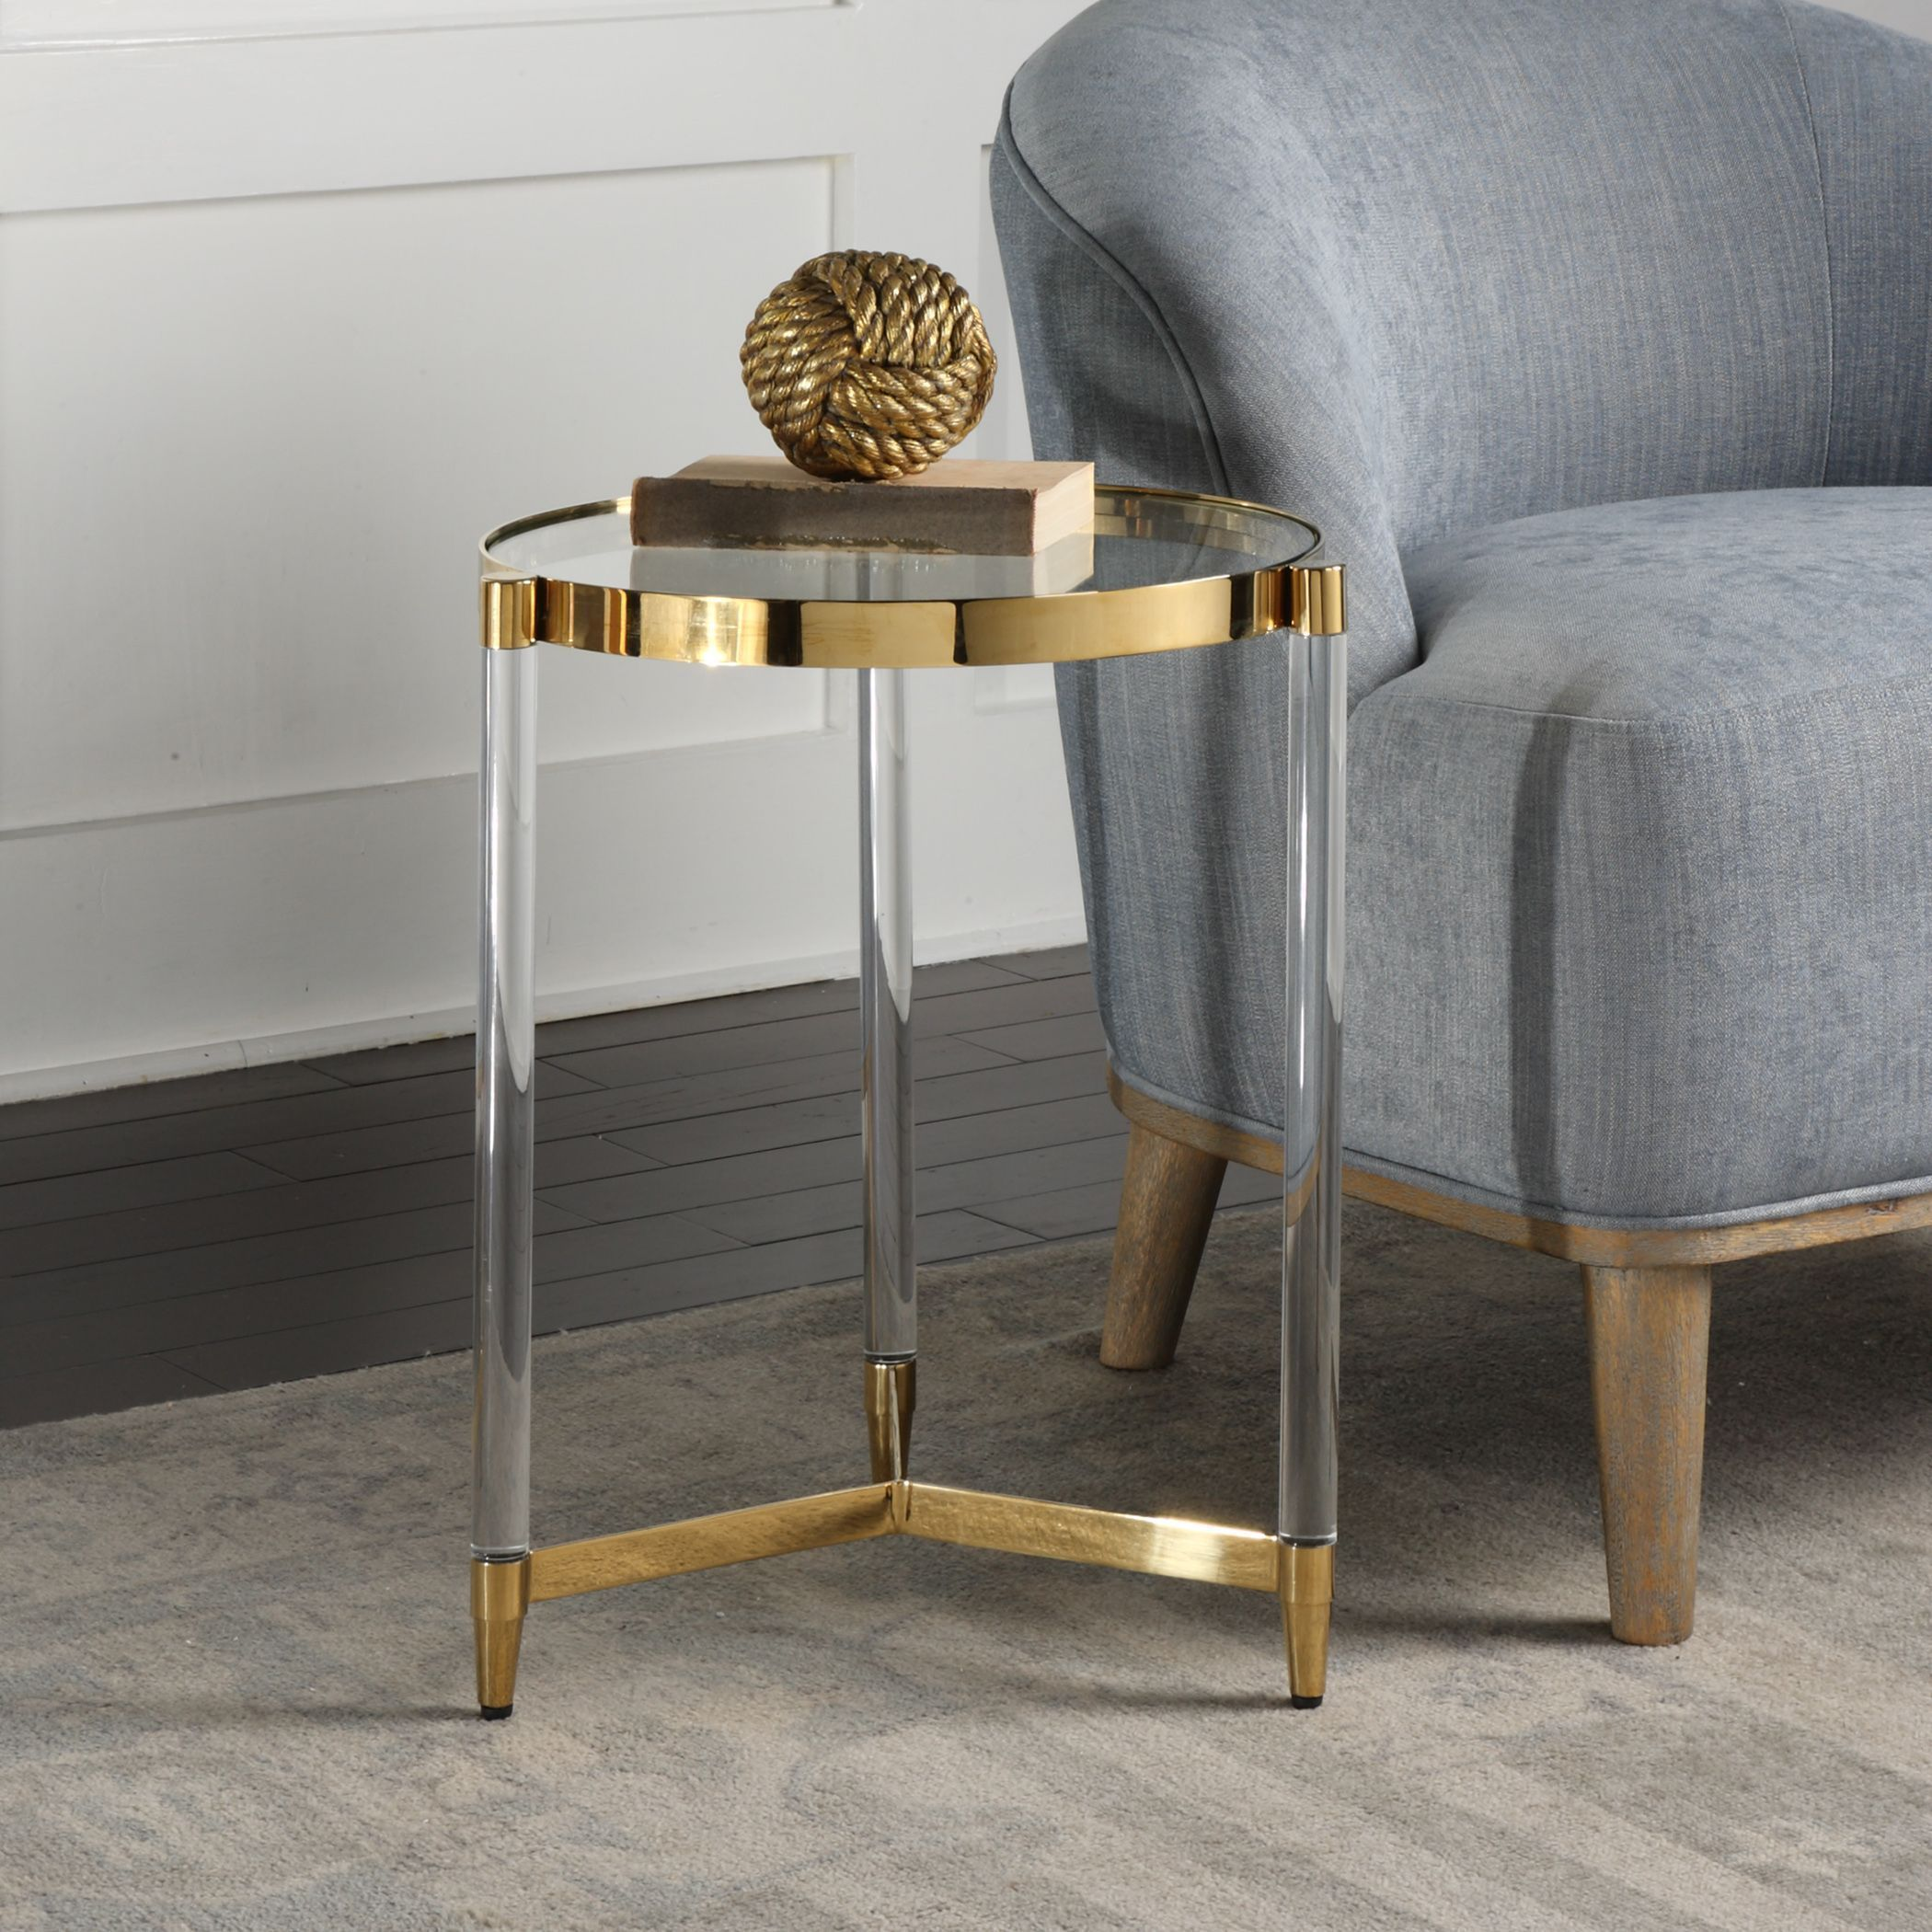 room top table cabinet living metal chro accent tables storage hawthorne glass furniture threshold kijiji small outdoor and modern avenue bench ott contemporary full size white